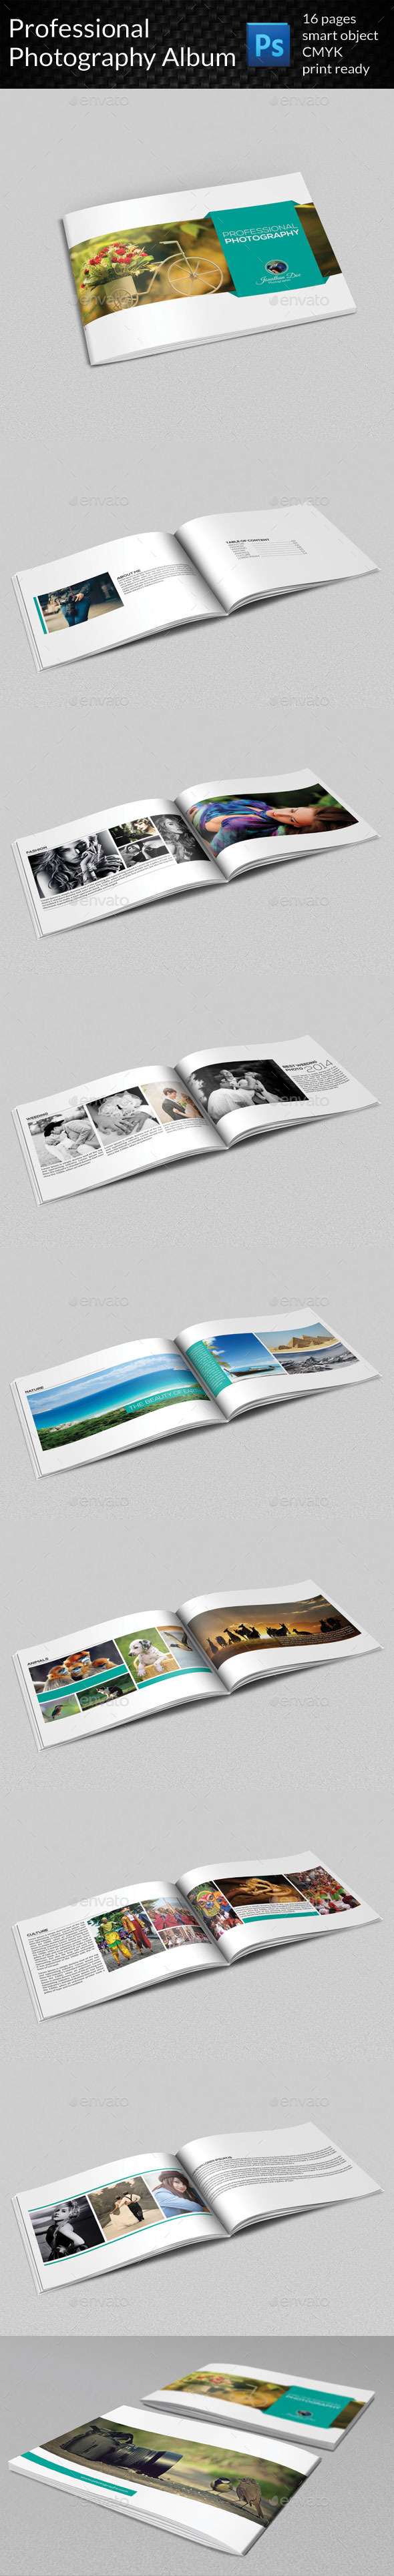 GraphicRiver Professional Photography Album 9276888